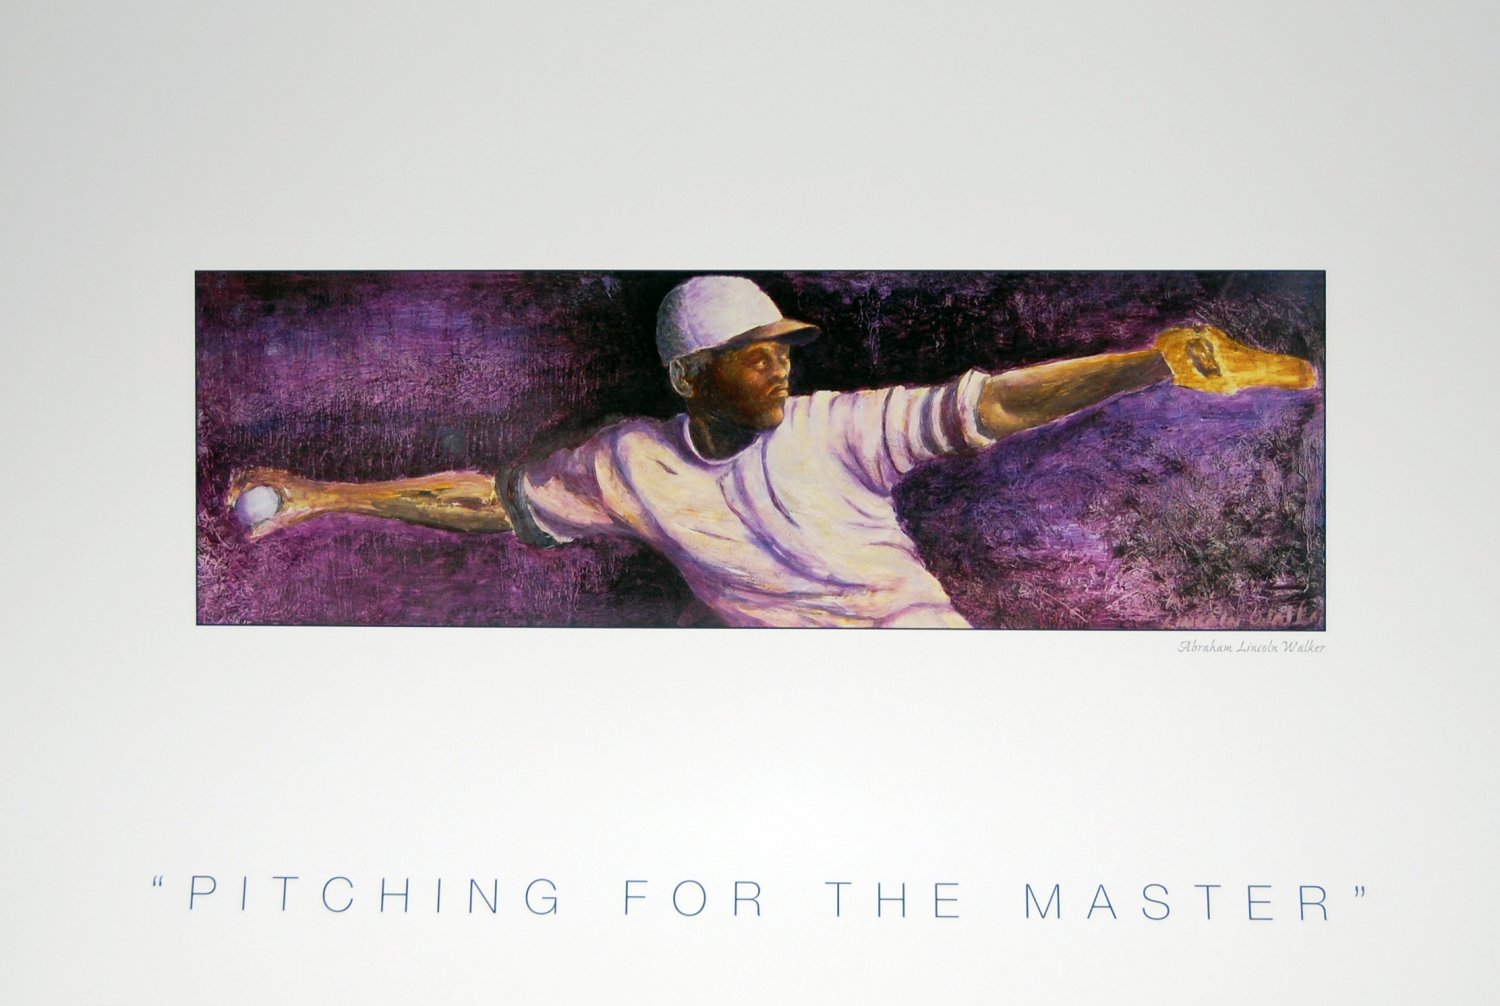 PITCHING FOR THE MASTER